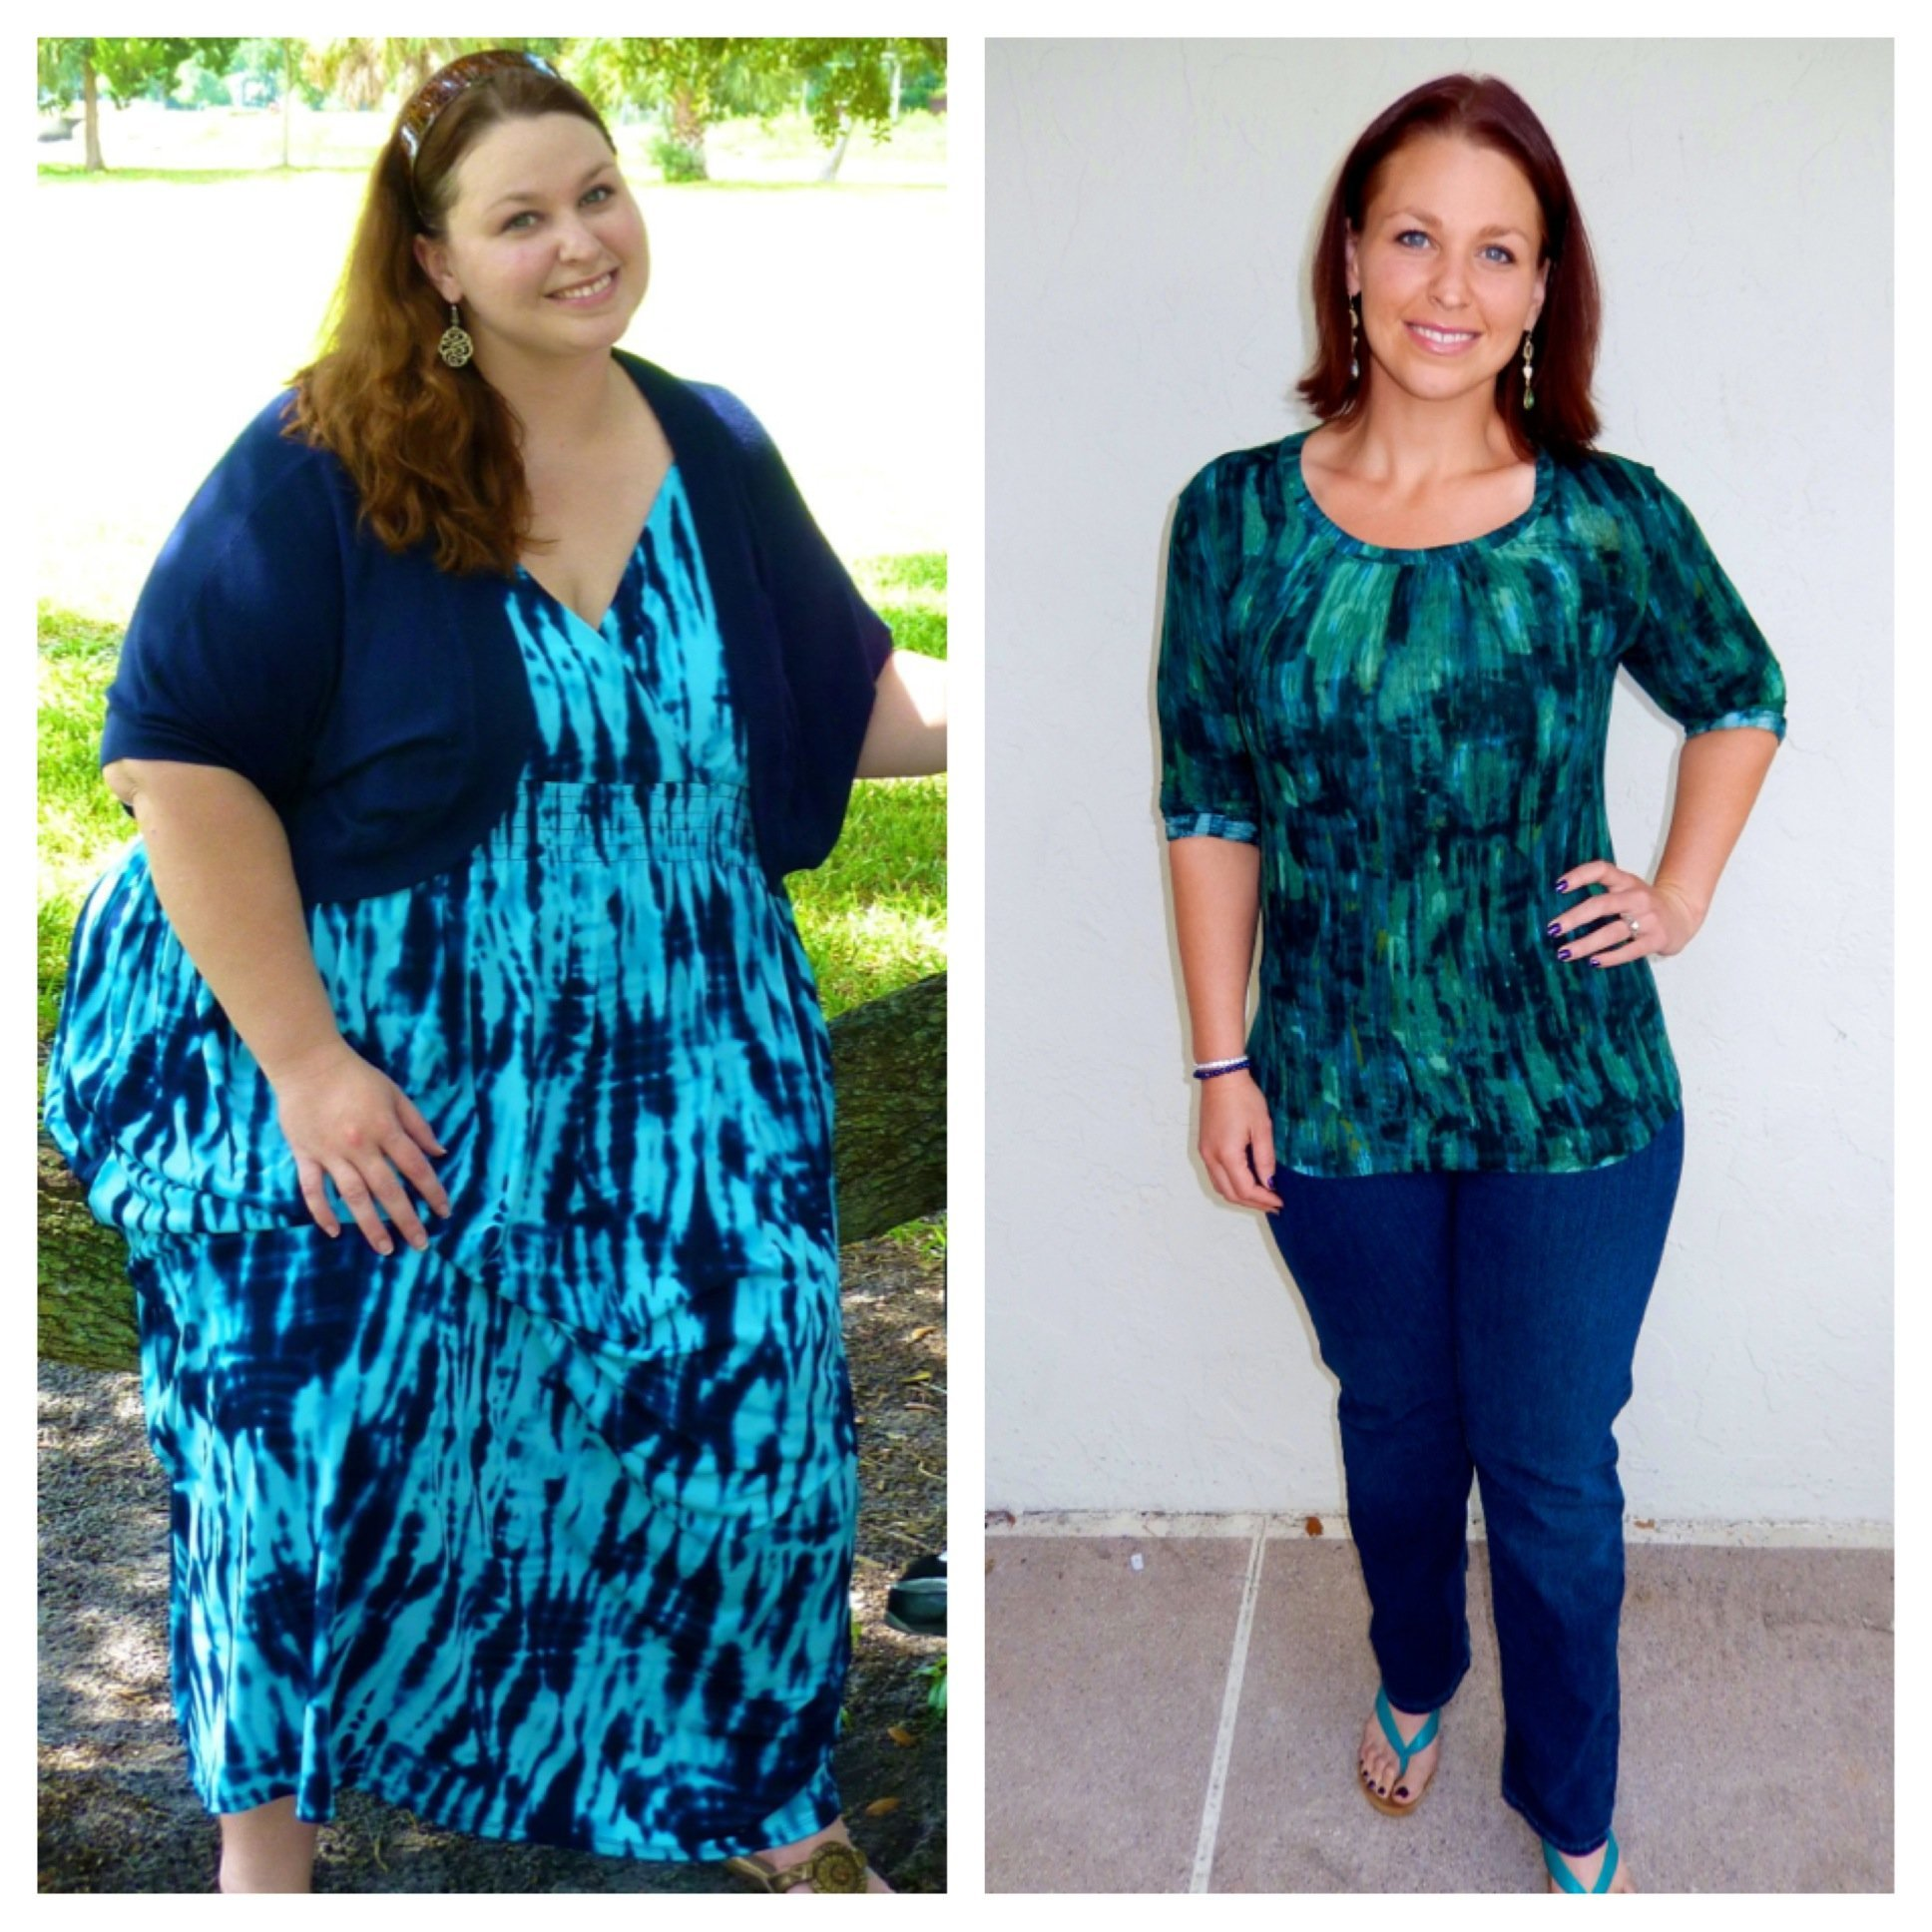 Transformation Inspiration Jacqui McCoy Before and After - Learn more at https://heidipowell.net/1407